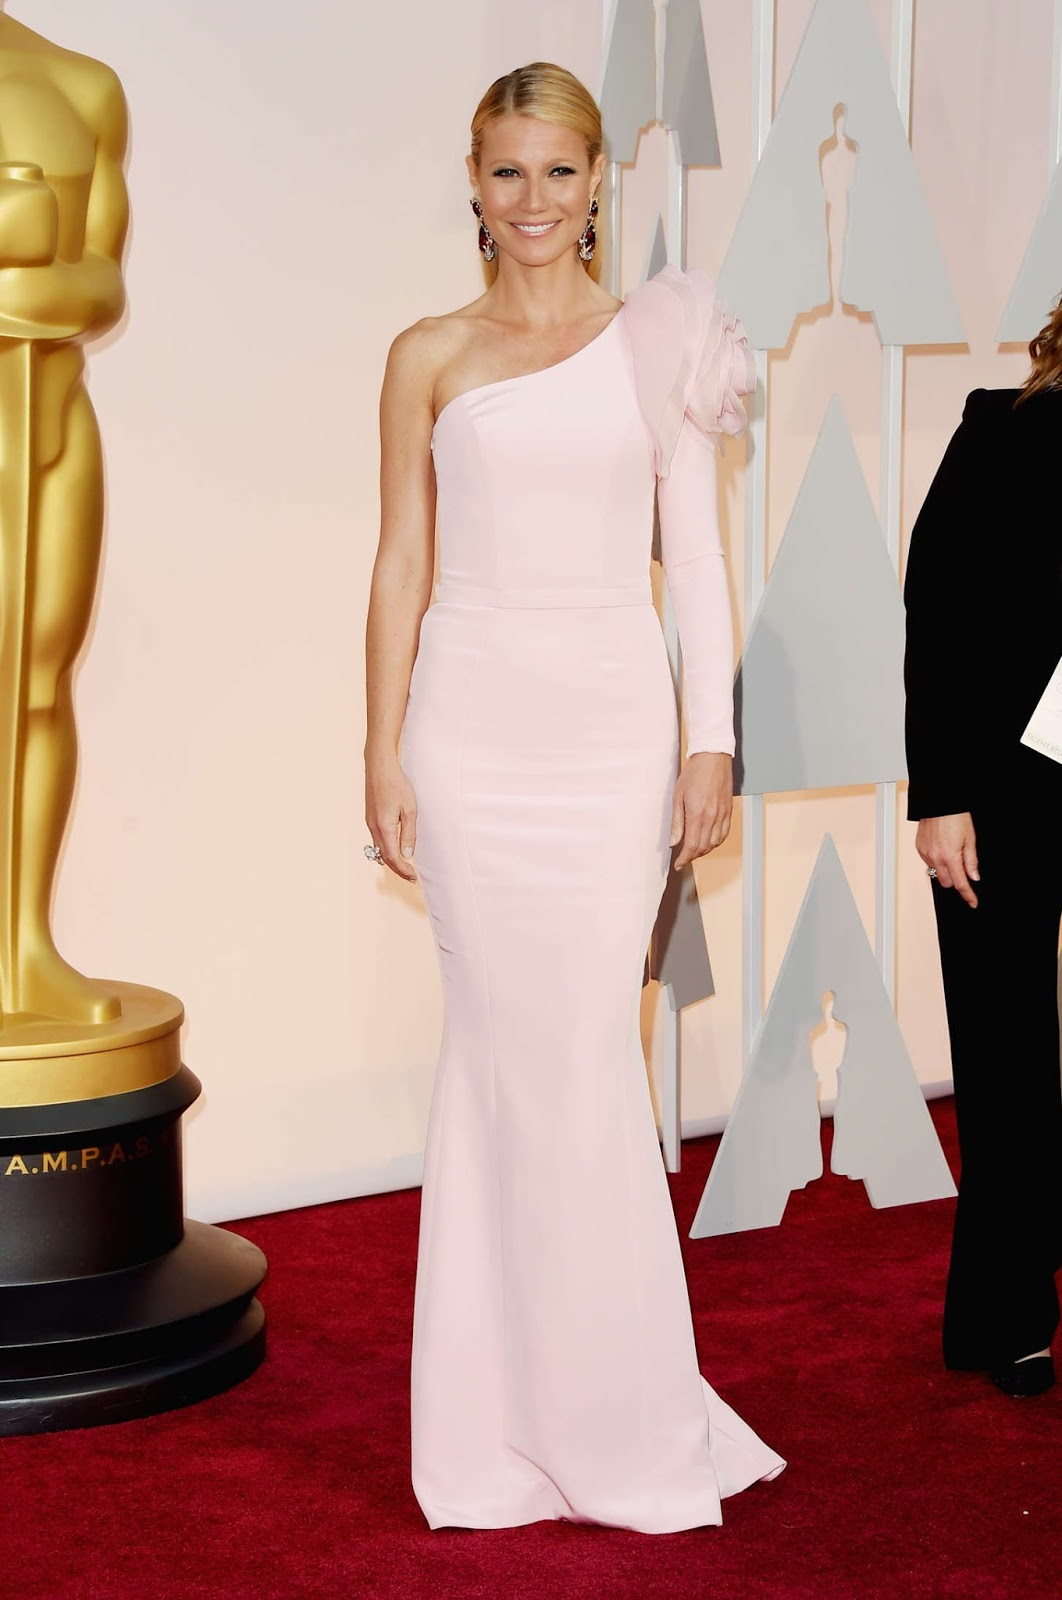 Alfombra Rosa Palo Gwyneth Paltrow Is Gorgeous In A Pale Pink Gown At The